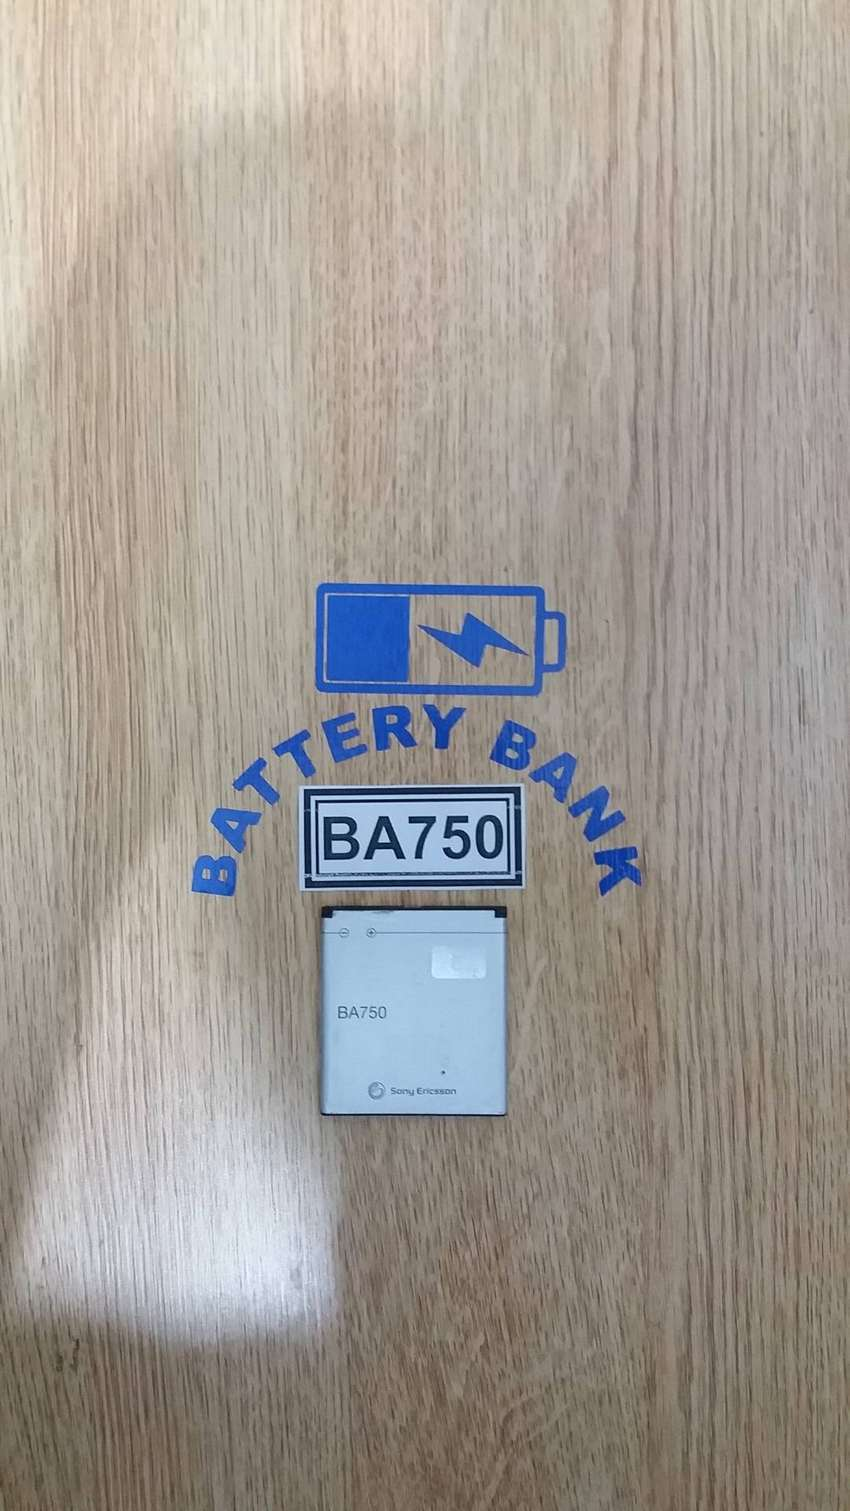 Sony Ericsson BA-750 Battery for Xperia Arc S Battery  OEM 0